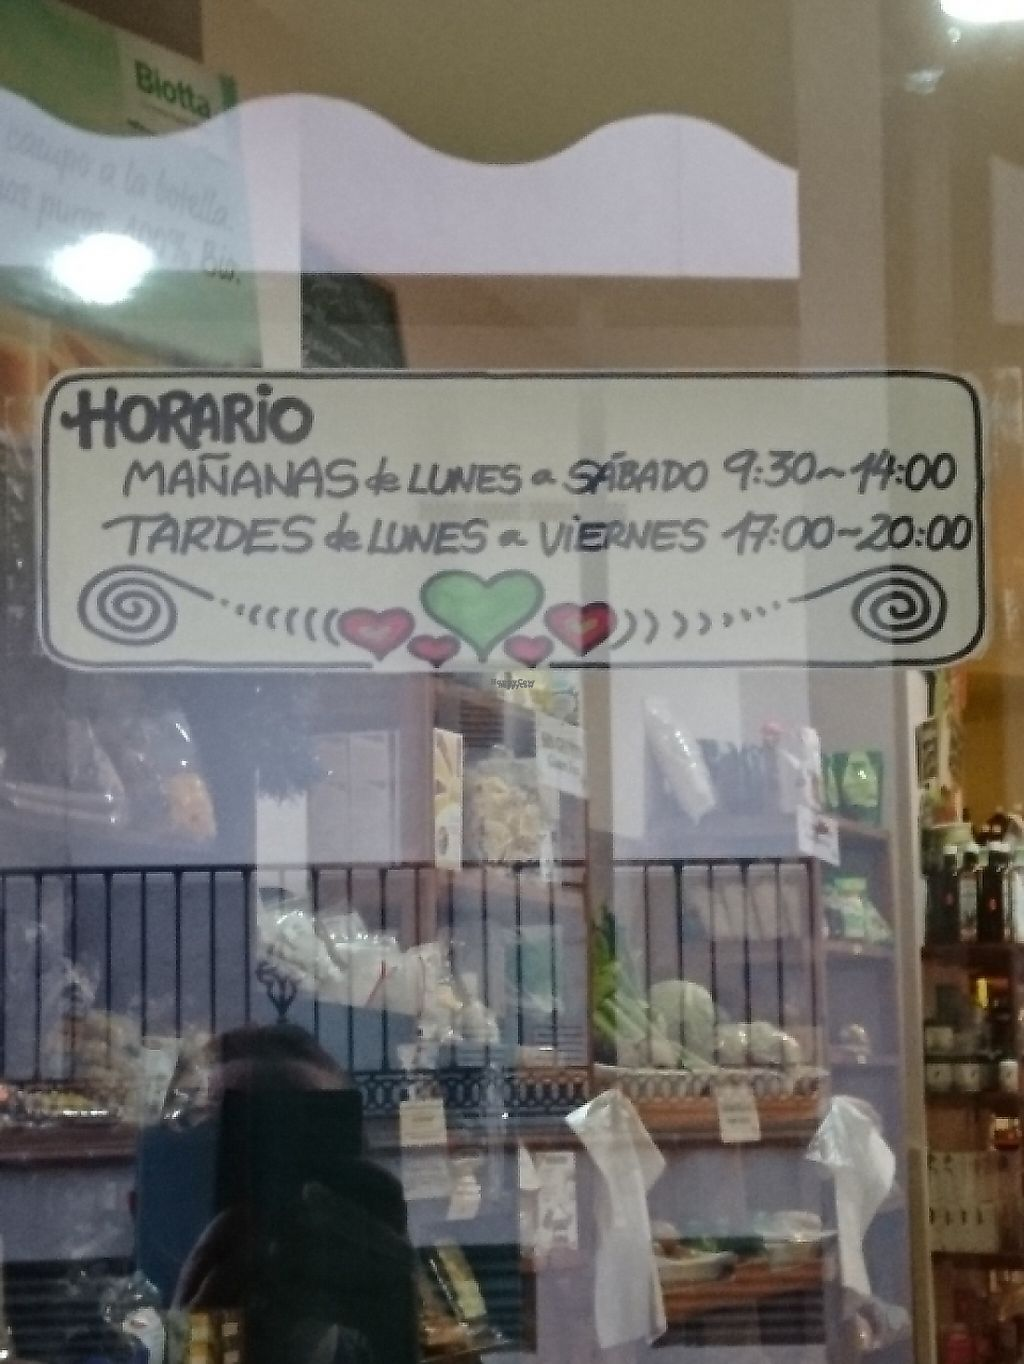 """Photo of Herbolario La Alacena  by <a href=""""/members/profile/Alleywaycat"""">Alleywaycat</a> <br/>Opening Times  <br/> December 29, 2016  - <a href='/contact/abuse/image/10839/209028'>Report</a>"""